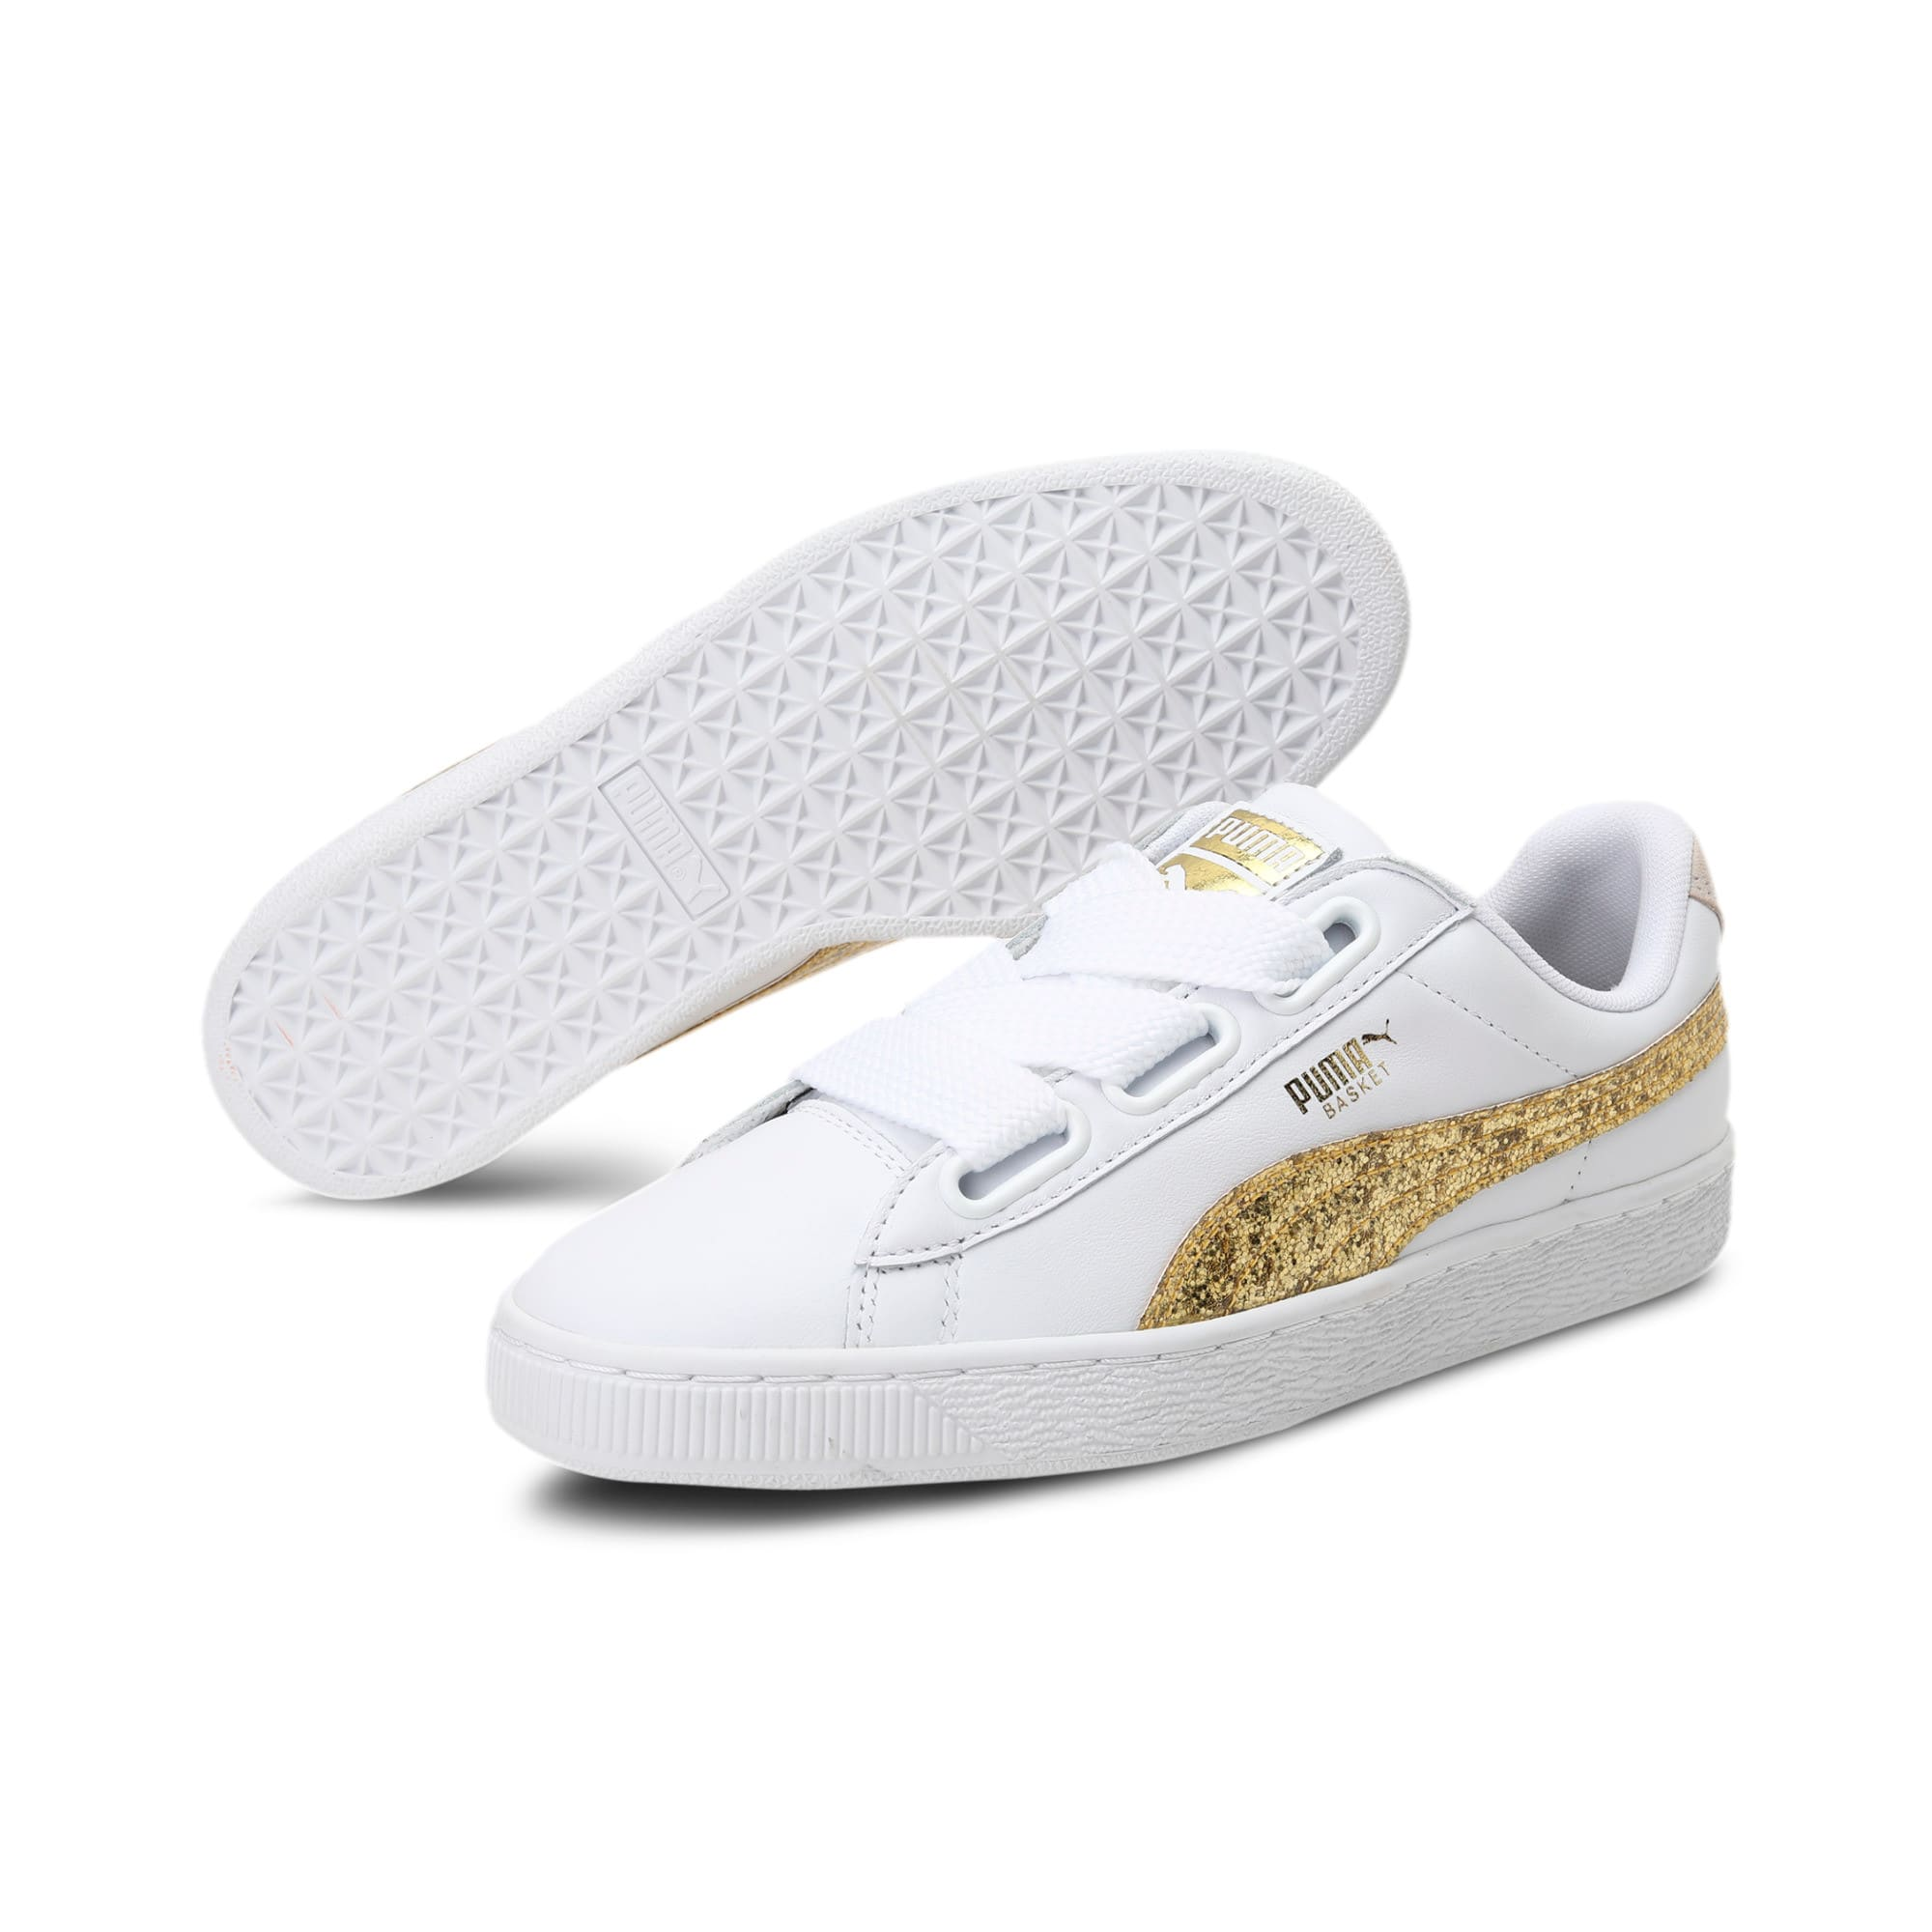 Thumbnail 2 of Basket Heart Glitter Women's Trainers, Puma White-Gold, medium-IND